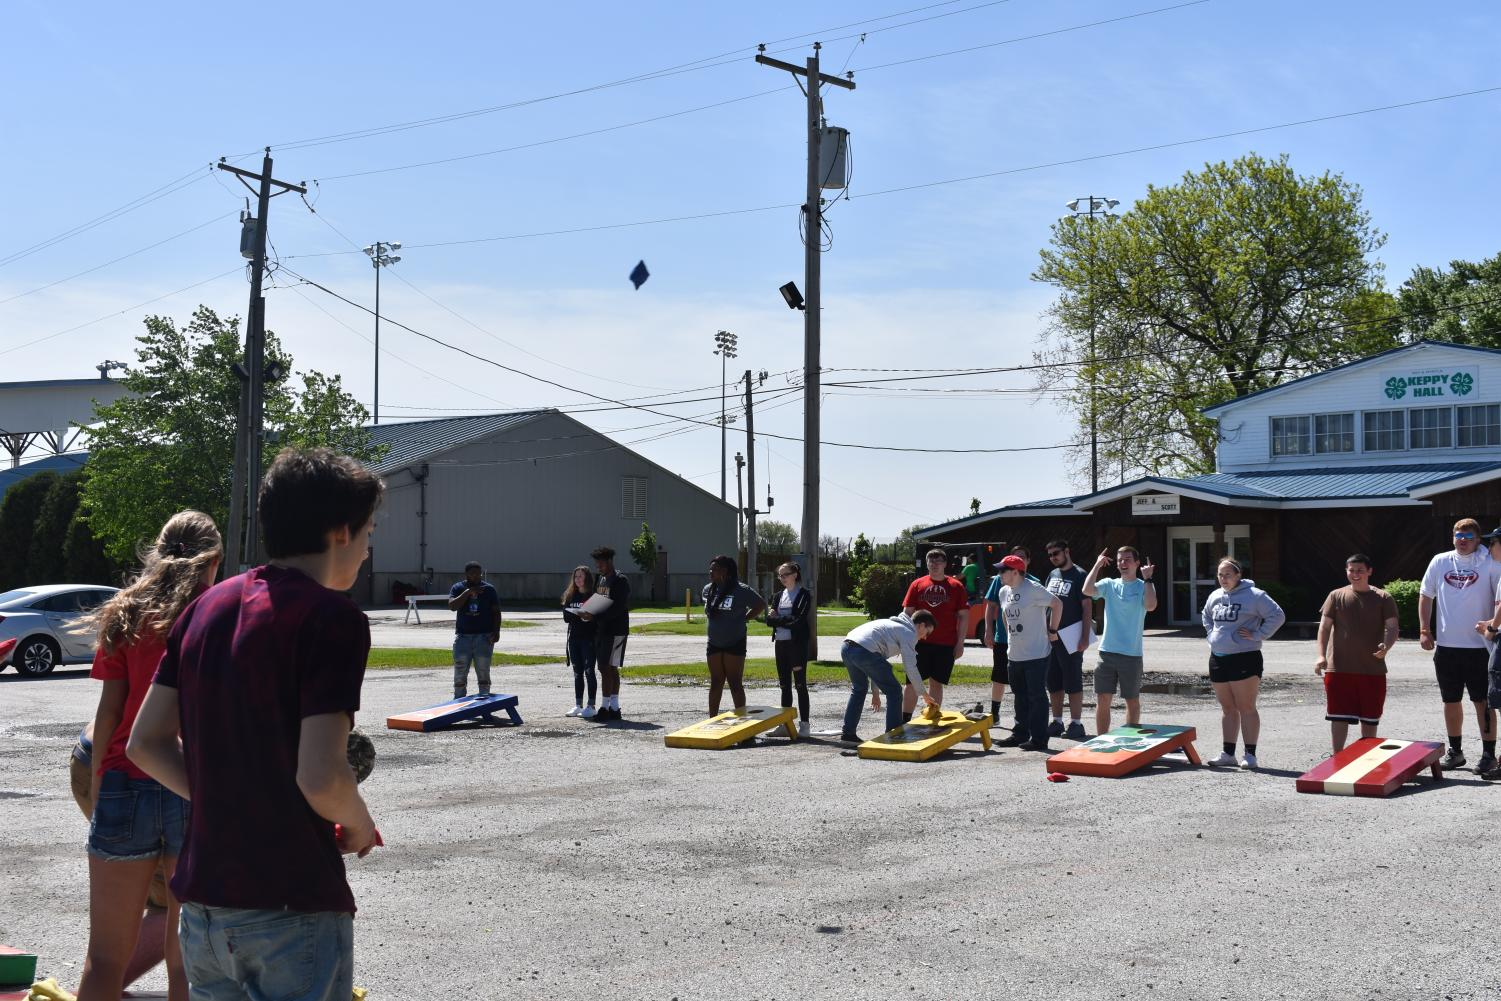 One of the featured games at the annual Falcon senior picnic was bags. West gym teachers were able to bring their supplies for students to use. According to Associate Principal Mike Orfitelli, it was the most popular activity.